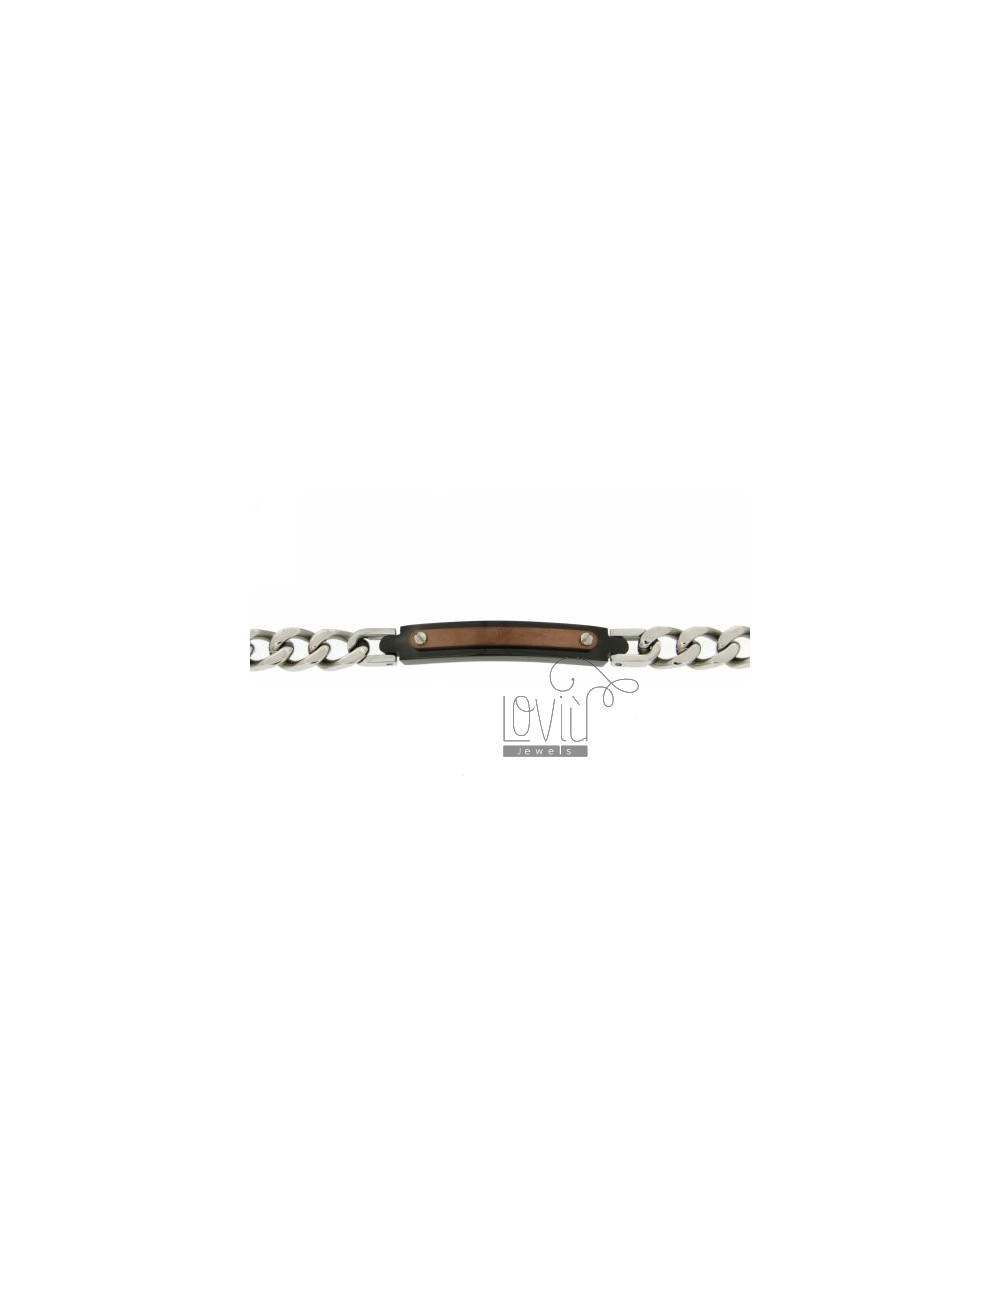 GRUMETTA BRACELET WITH STEEL PLATE 6 MM AND ROSE GOLD PLATED RUTENIO